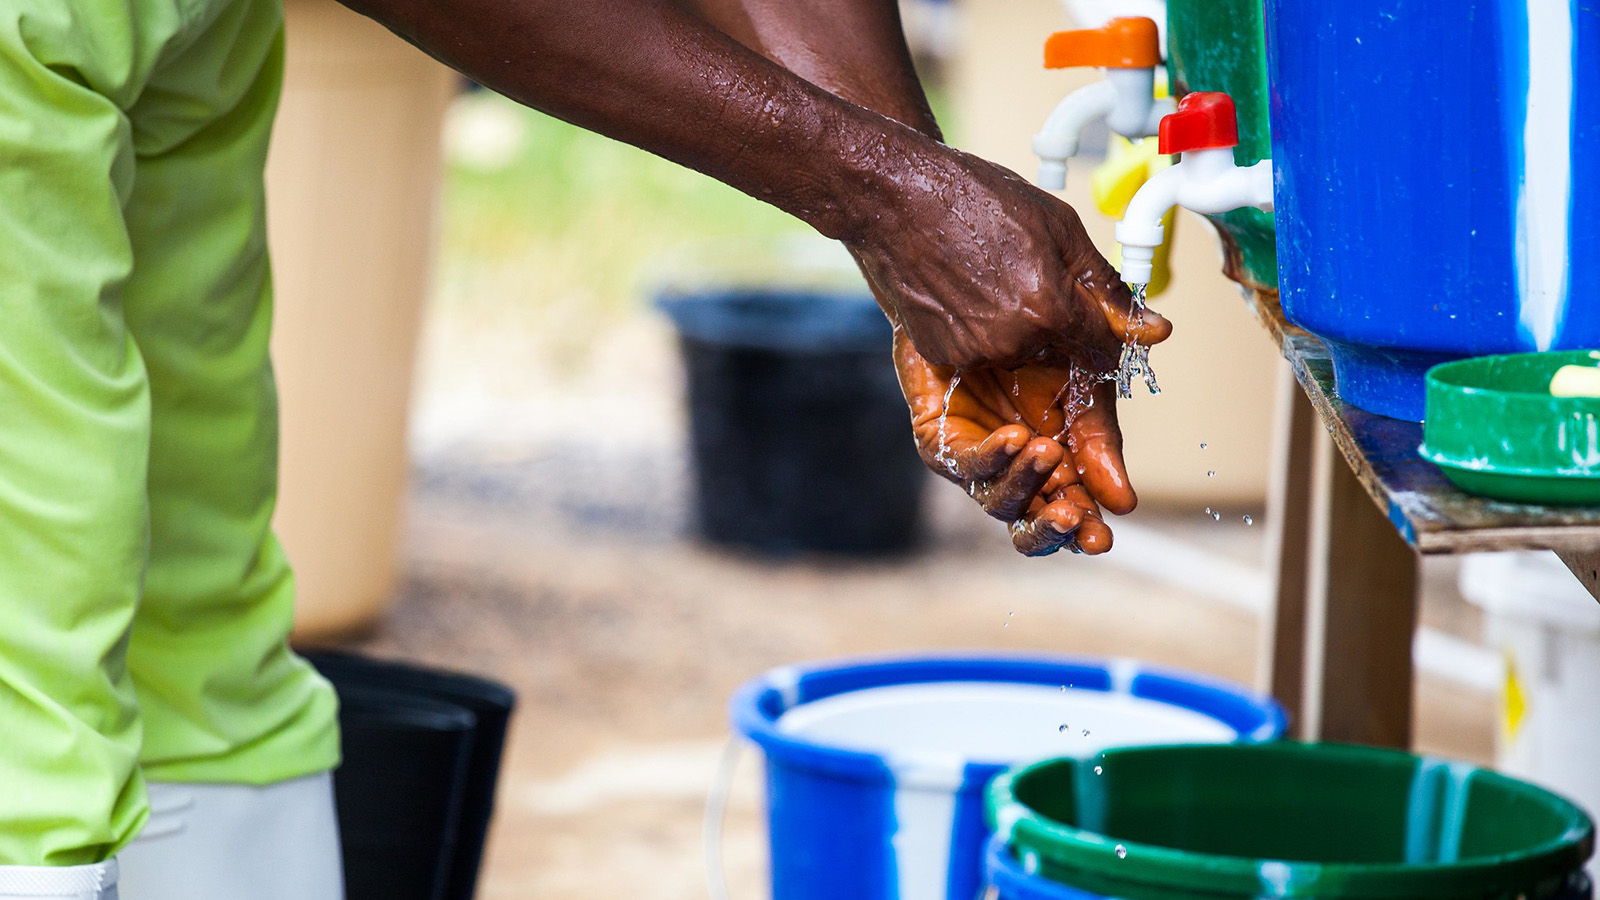 A Liberian nurse washing his hands after treating a patient.